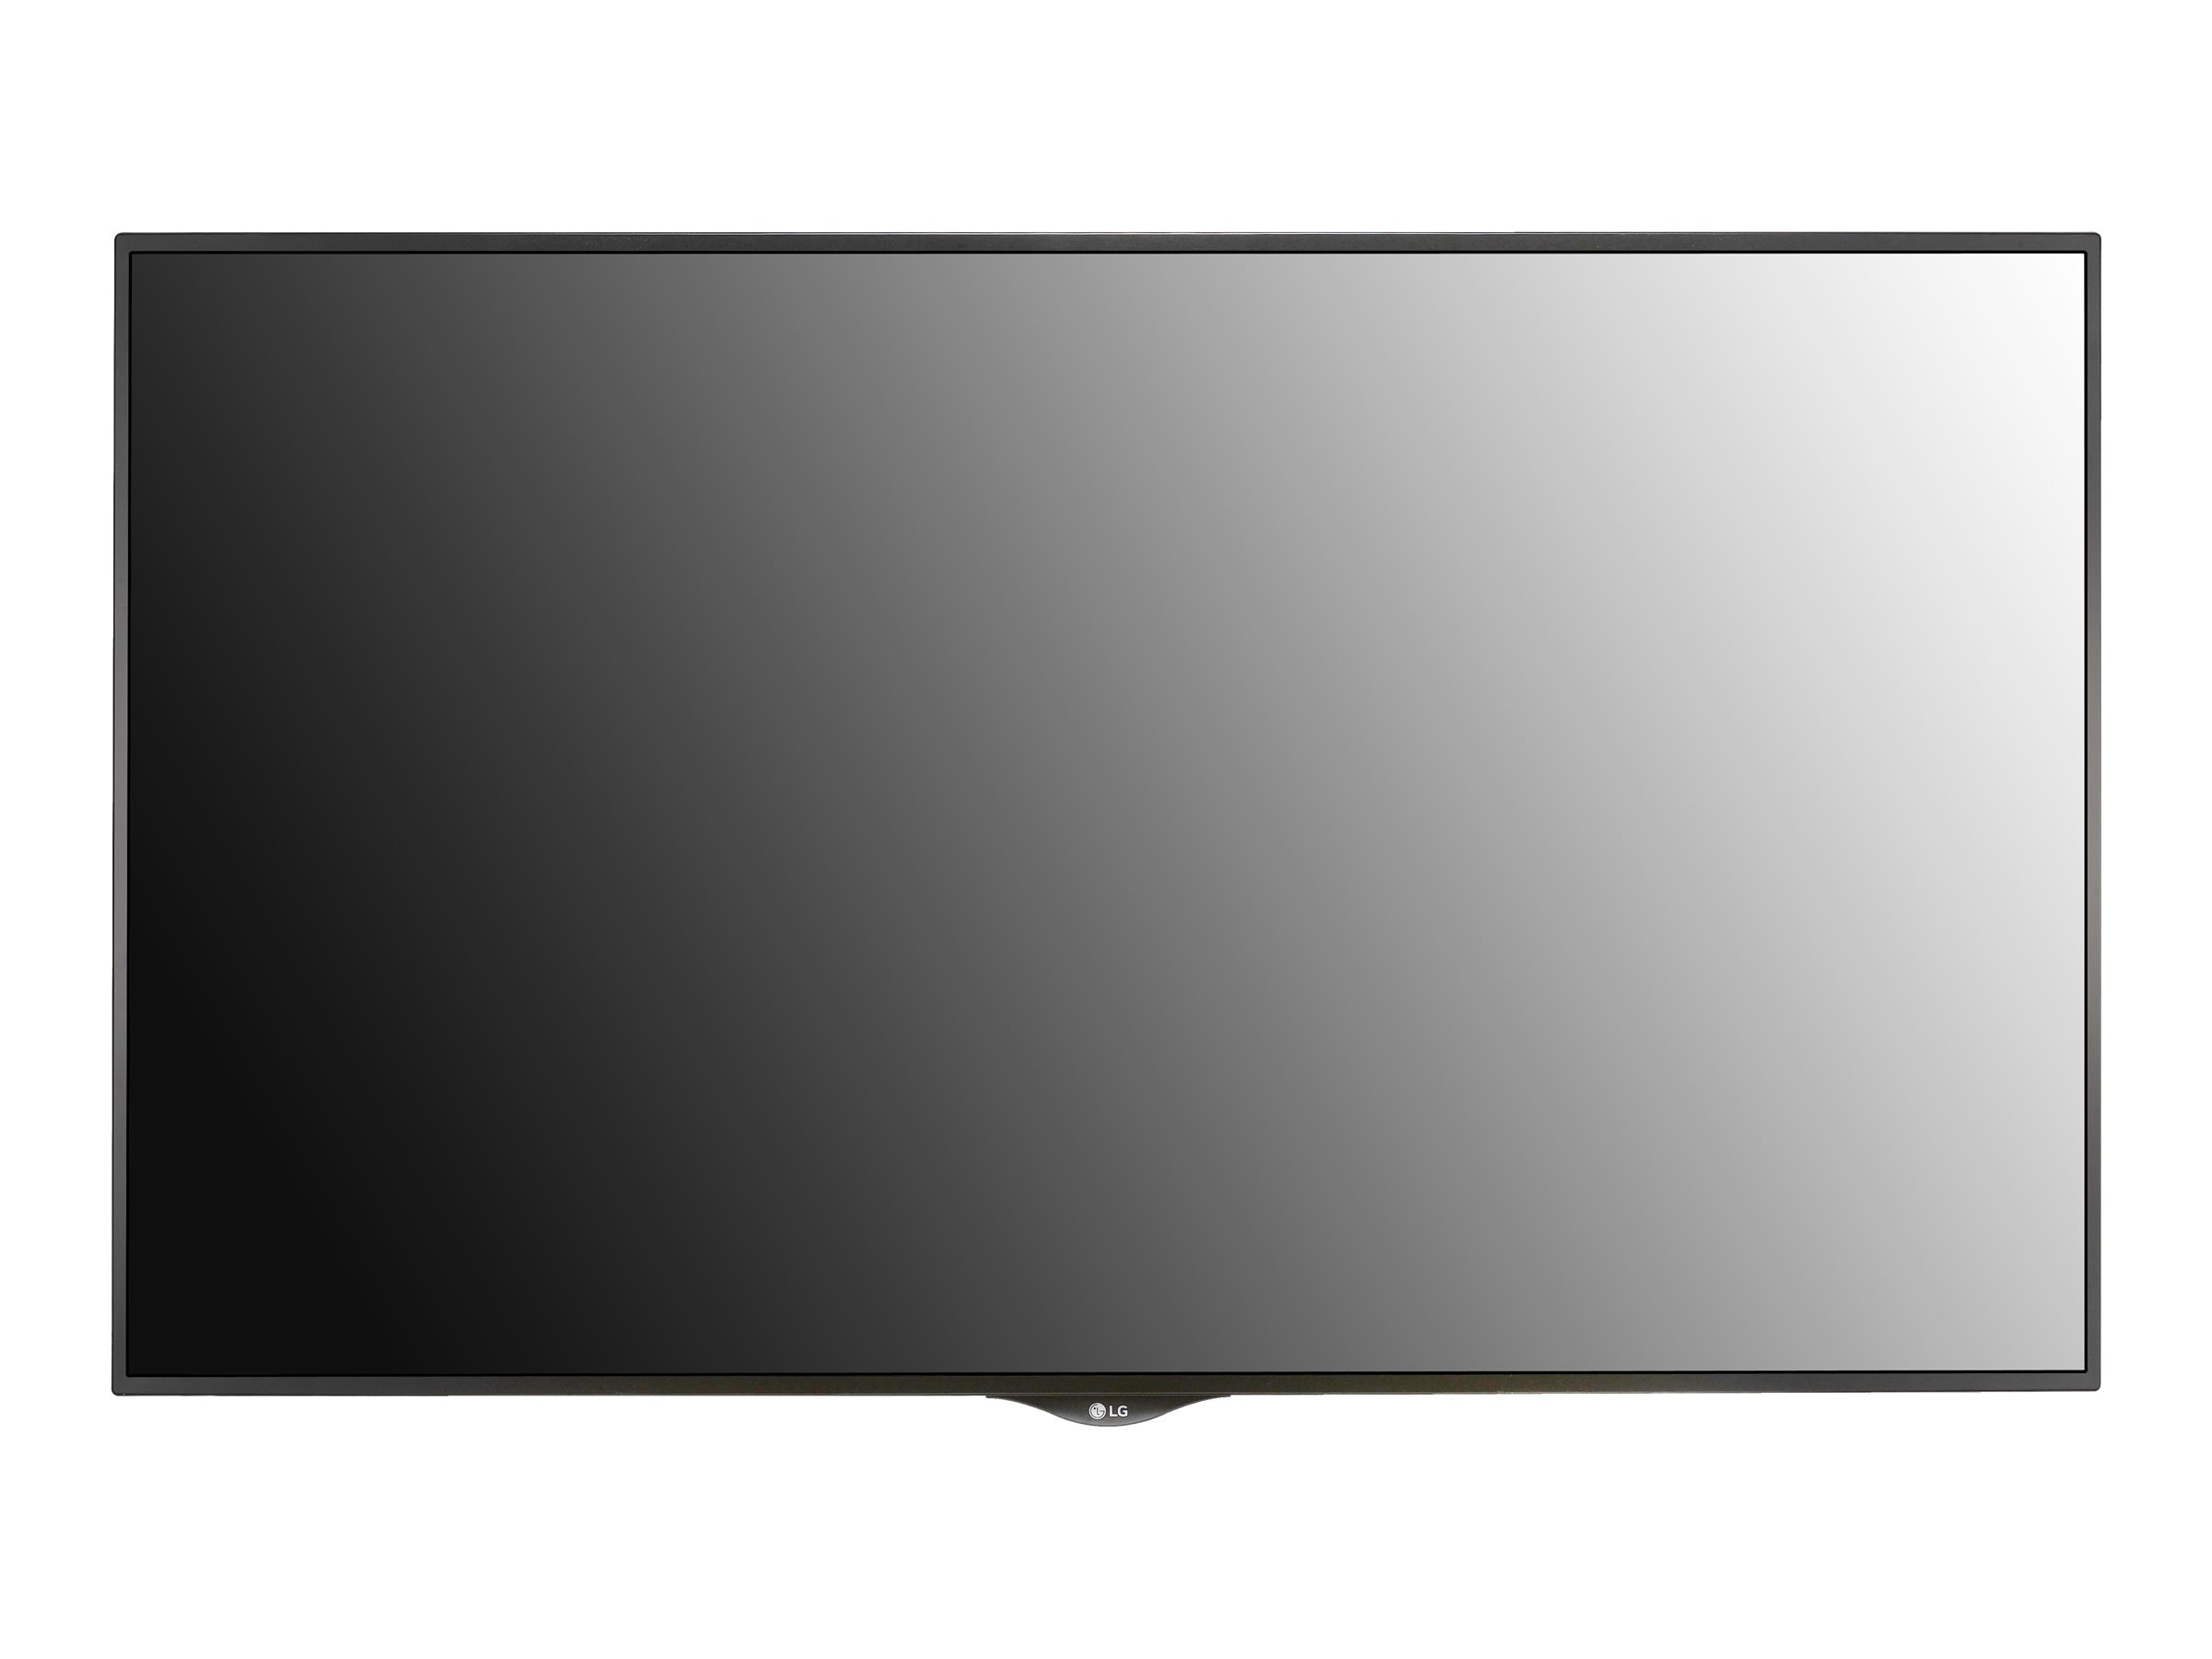 LG 49 XS2B-B Full HD LED-LCD Hospitality TV, Black